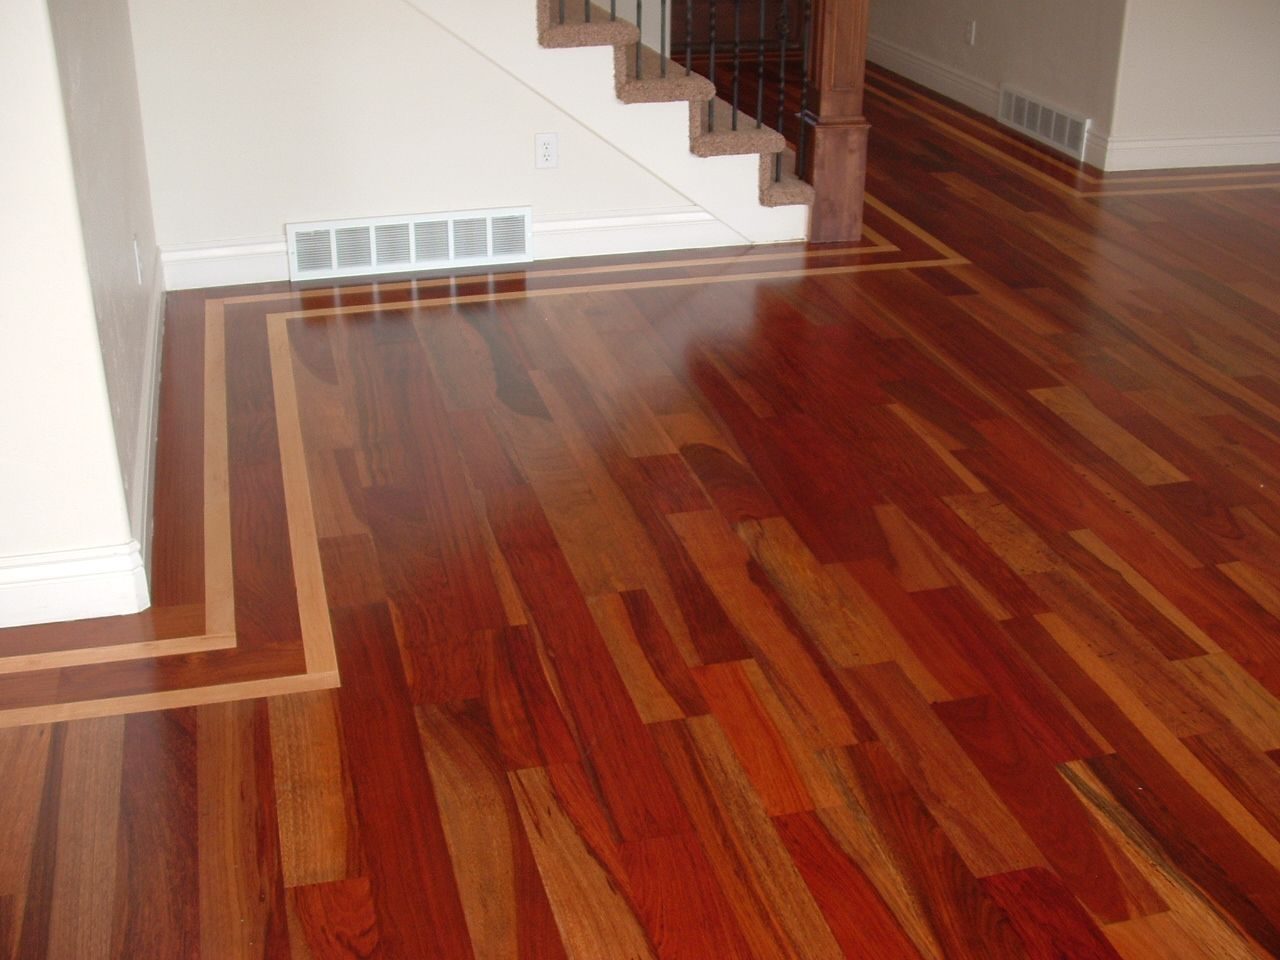 Brazilian cherry hardwood flooring flooring ideas home for Hardwood floors or carpet